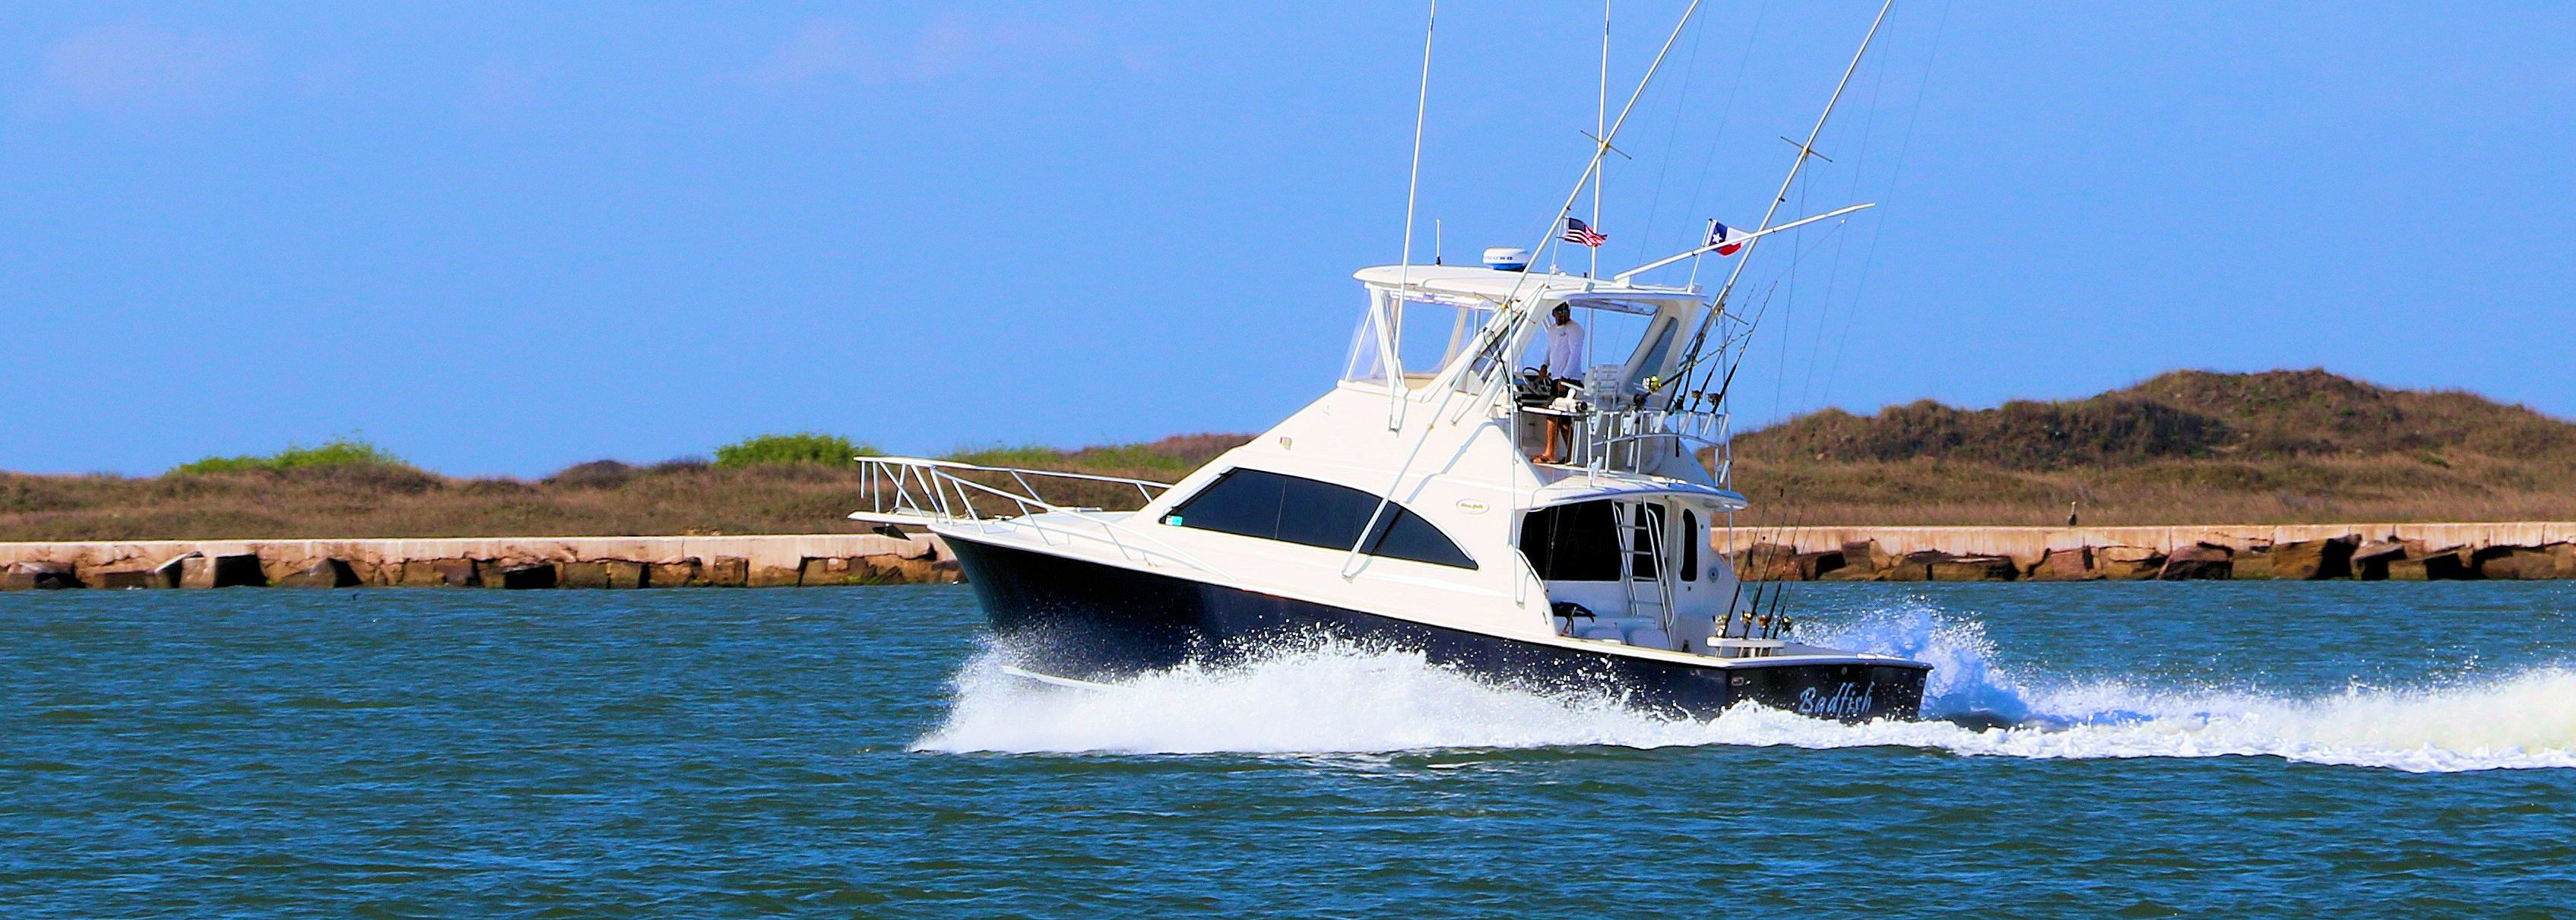 4h1a00912 port aransas offshore fishing charters